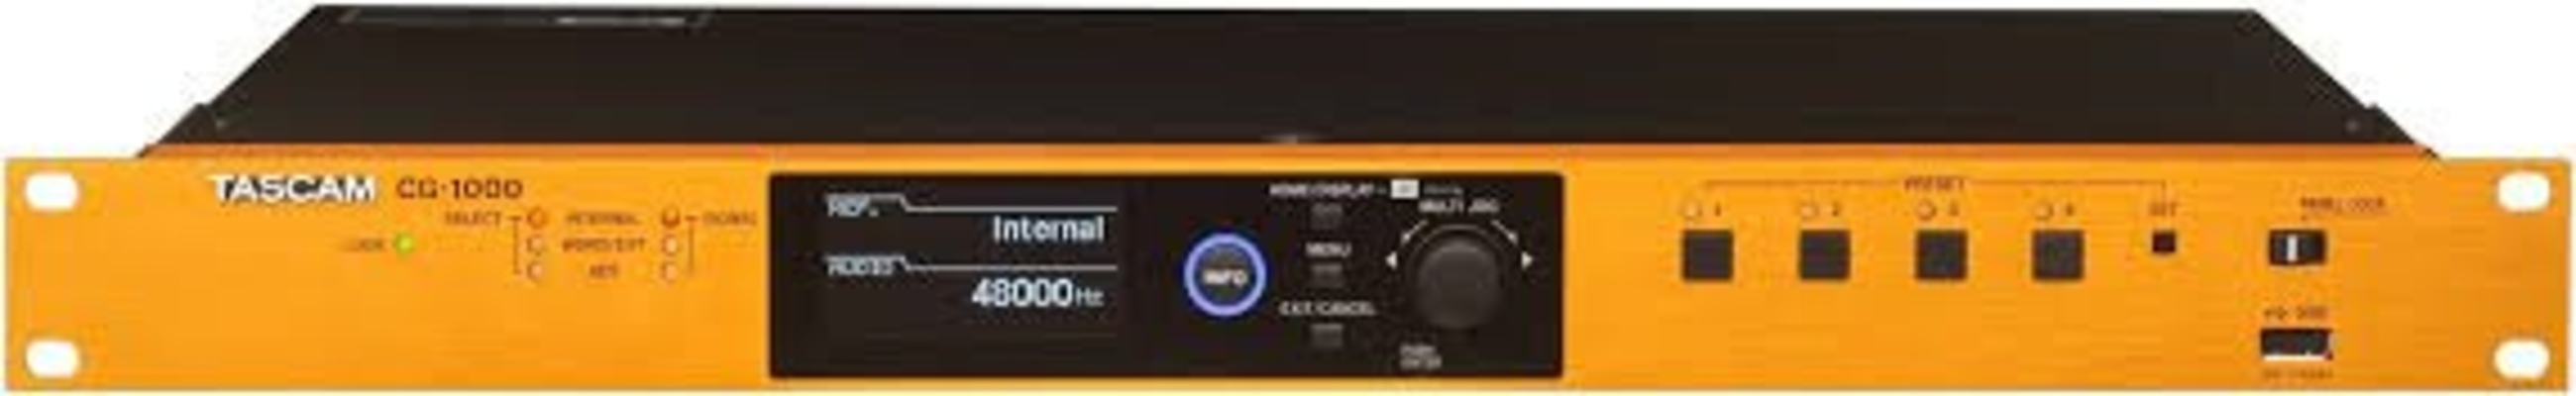 Tascam CG-1000 Master Clock Generator for Recording Studios12 WC Out 2x AES3/AES11 Out 2x SPDIF Out